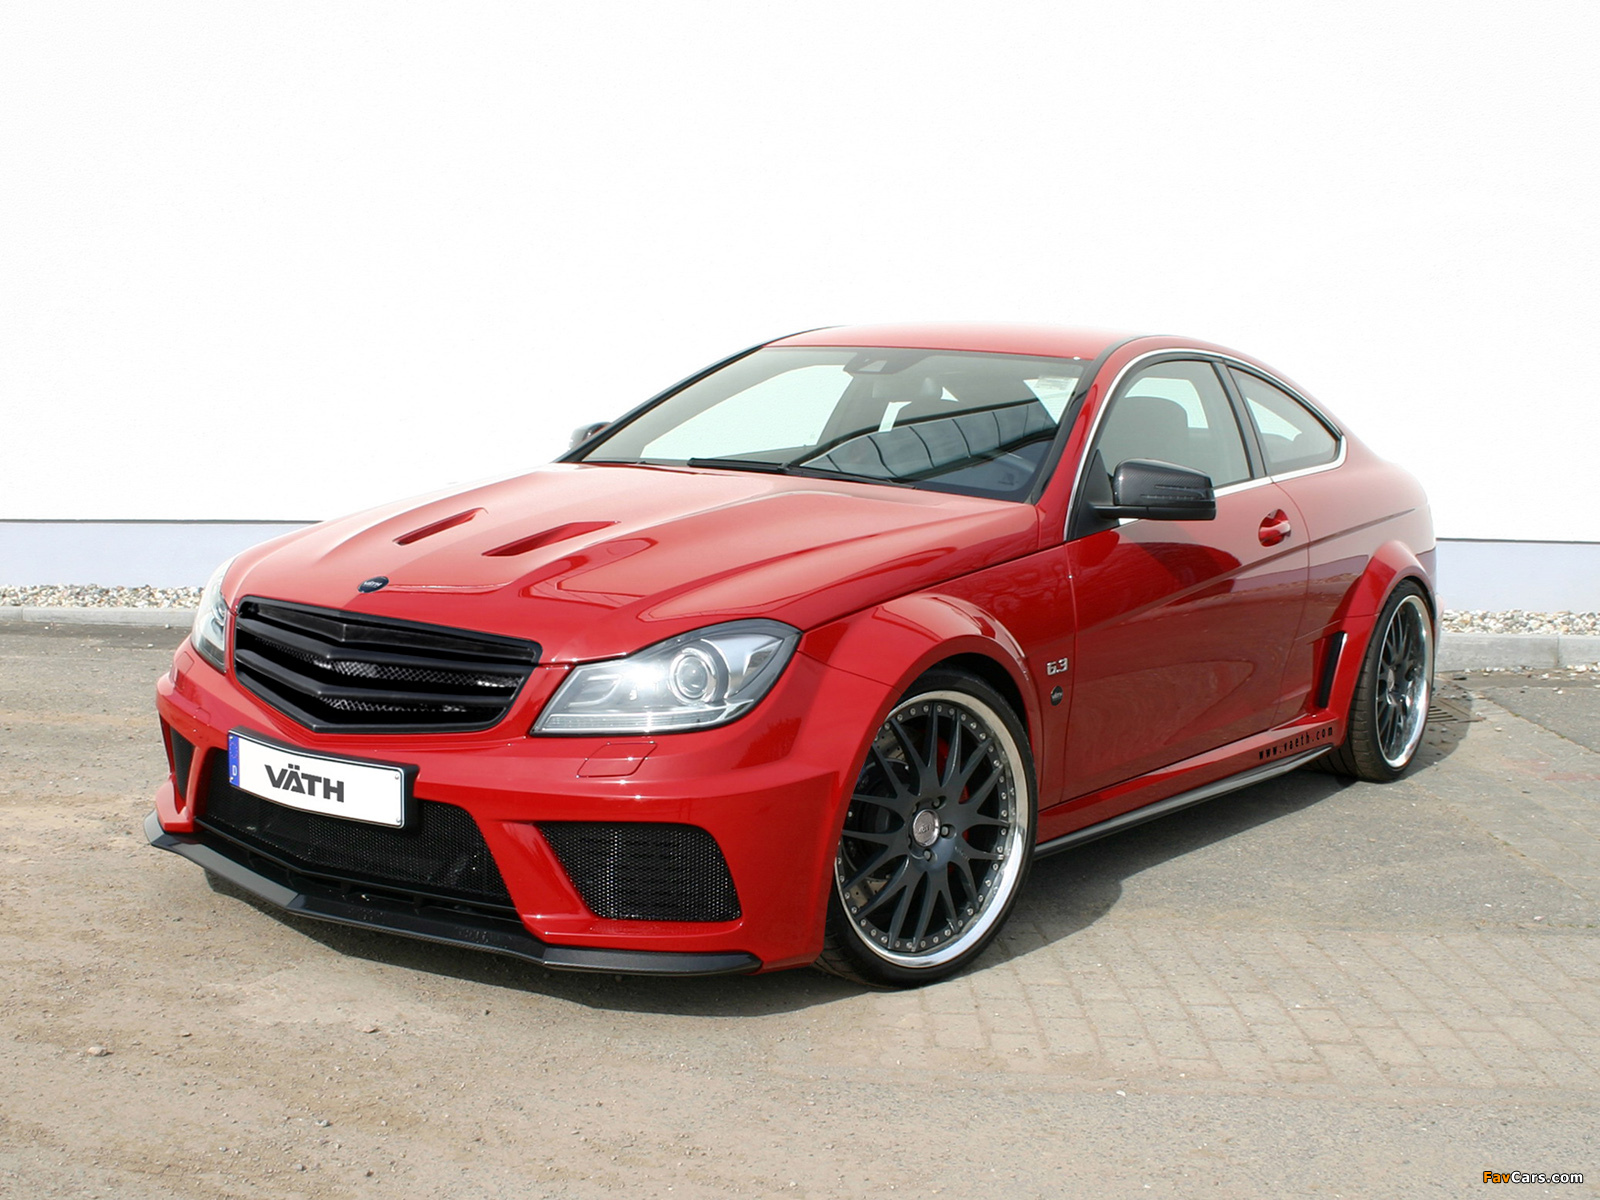 Photos of VÄTH V63 Supercharged Black Series Coupe (C204) 2012 (1600 x 1200)